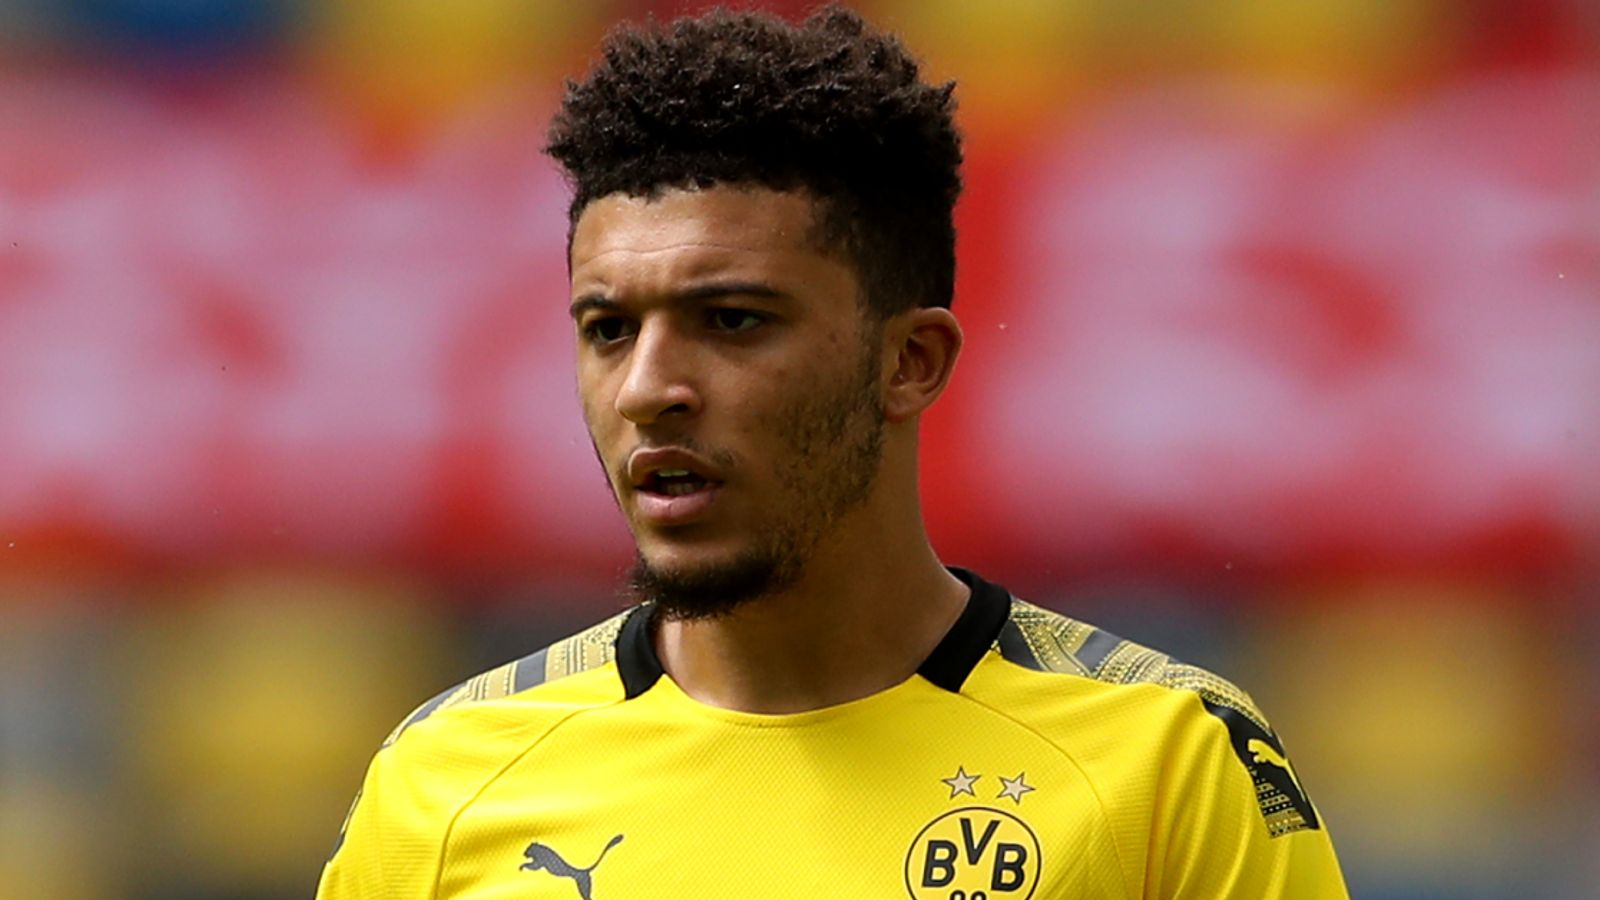 Man Utd to drop pursuit of Borussia Dortmund winger Jadon Sancho